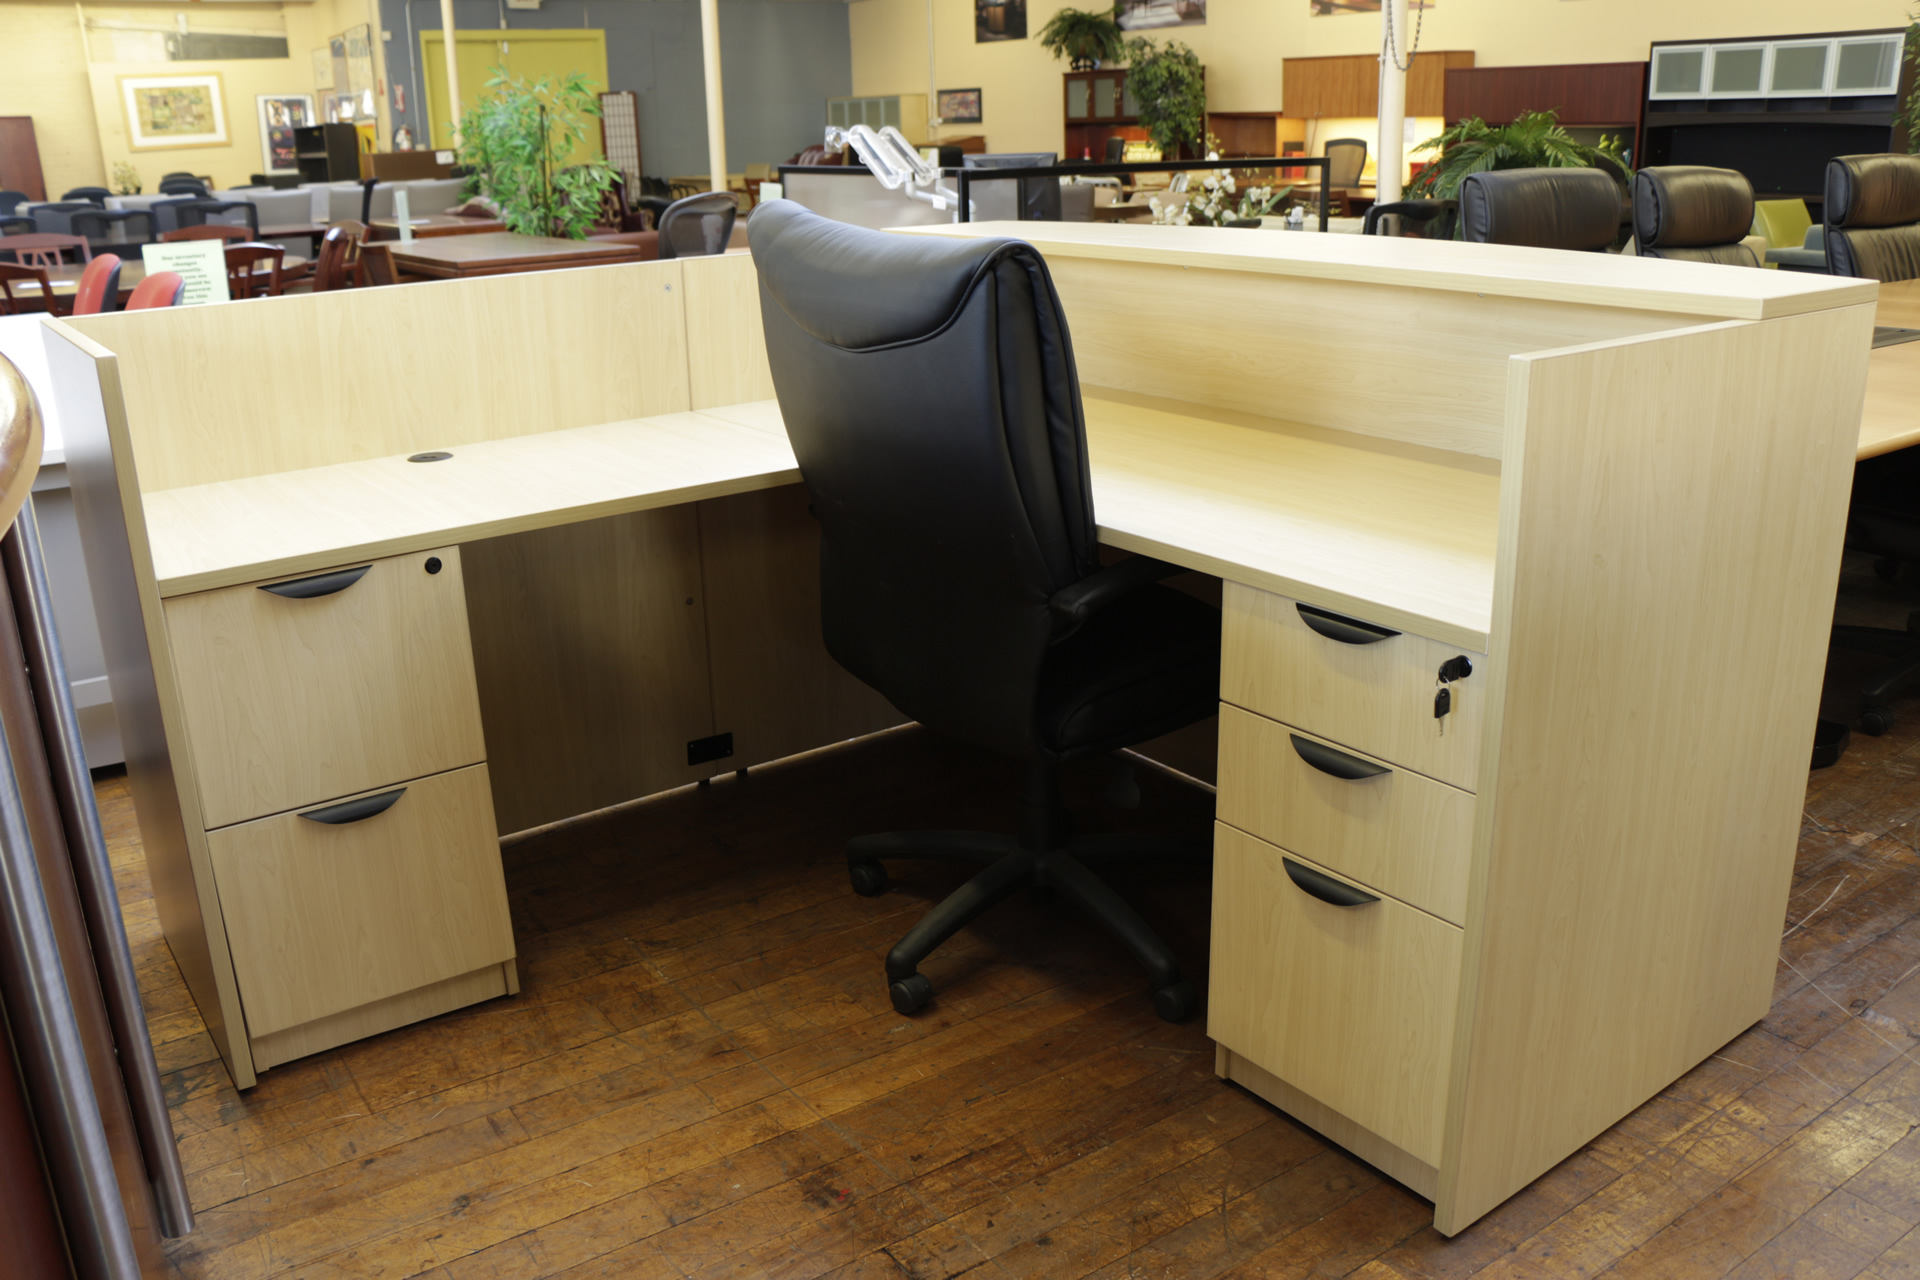 peartreeofficefurniture_peartreeofficefurniture_mg_2122.jpg